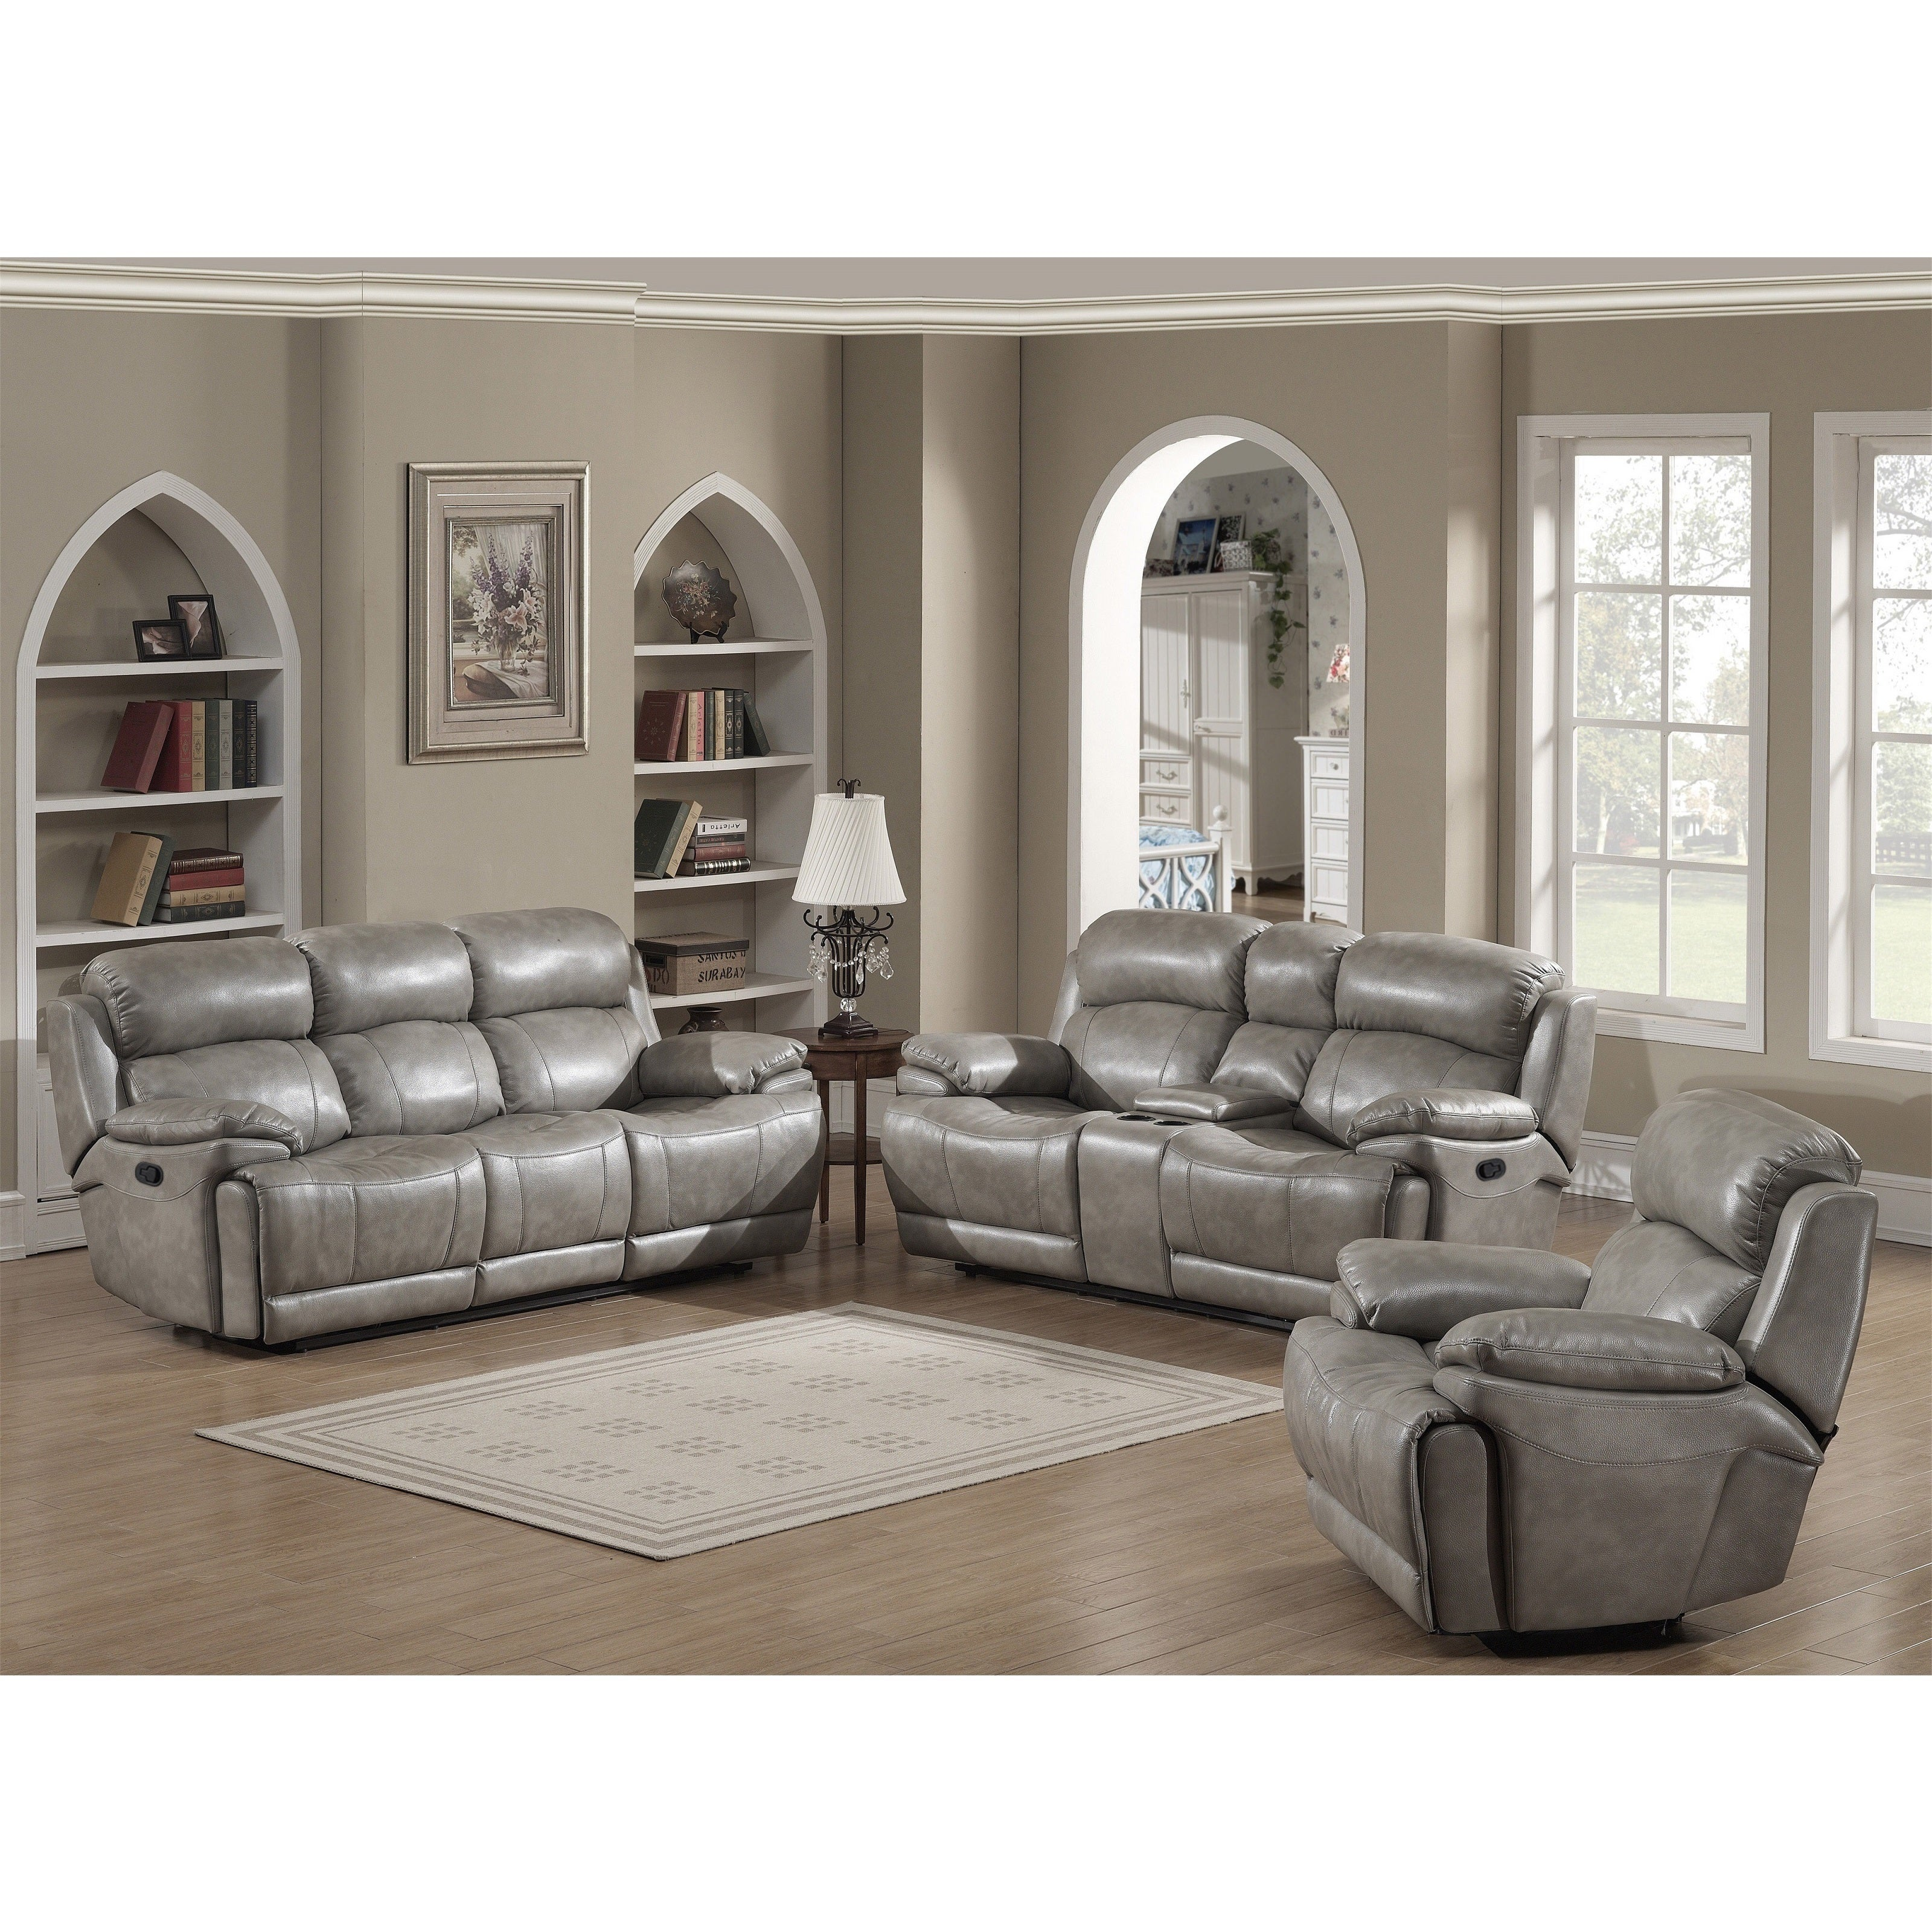 shop sofa collection sets fabric set meridian room furniture living loveseat and